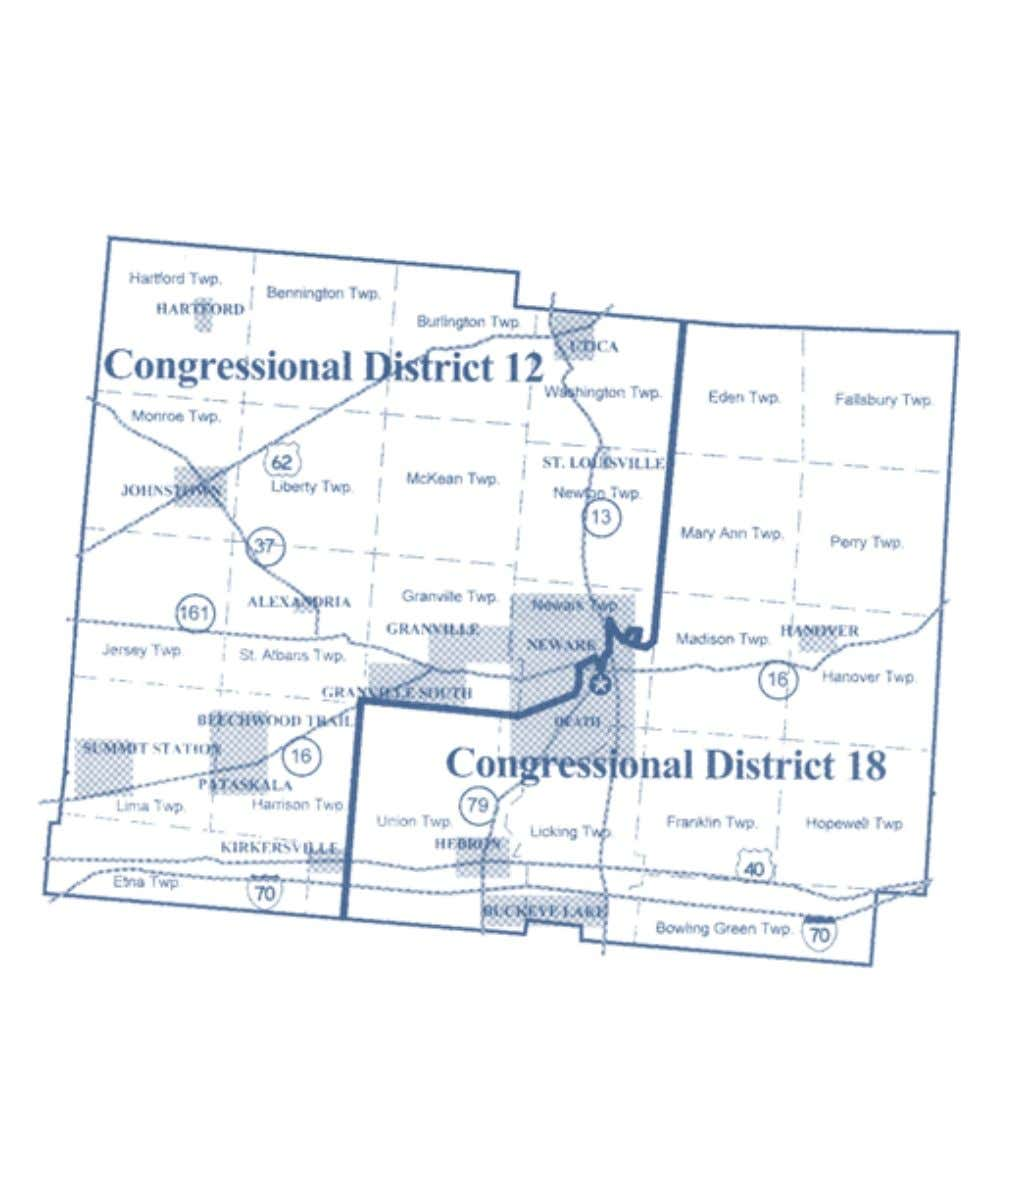 2002-2012 OhiO District Maps Licking County Congressional Districts Office of the Ohio Secretary of State 13